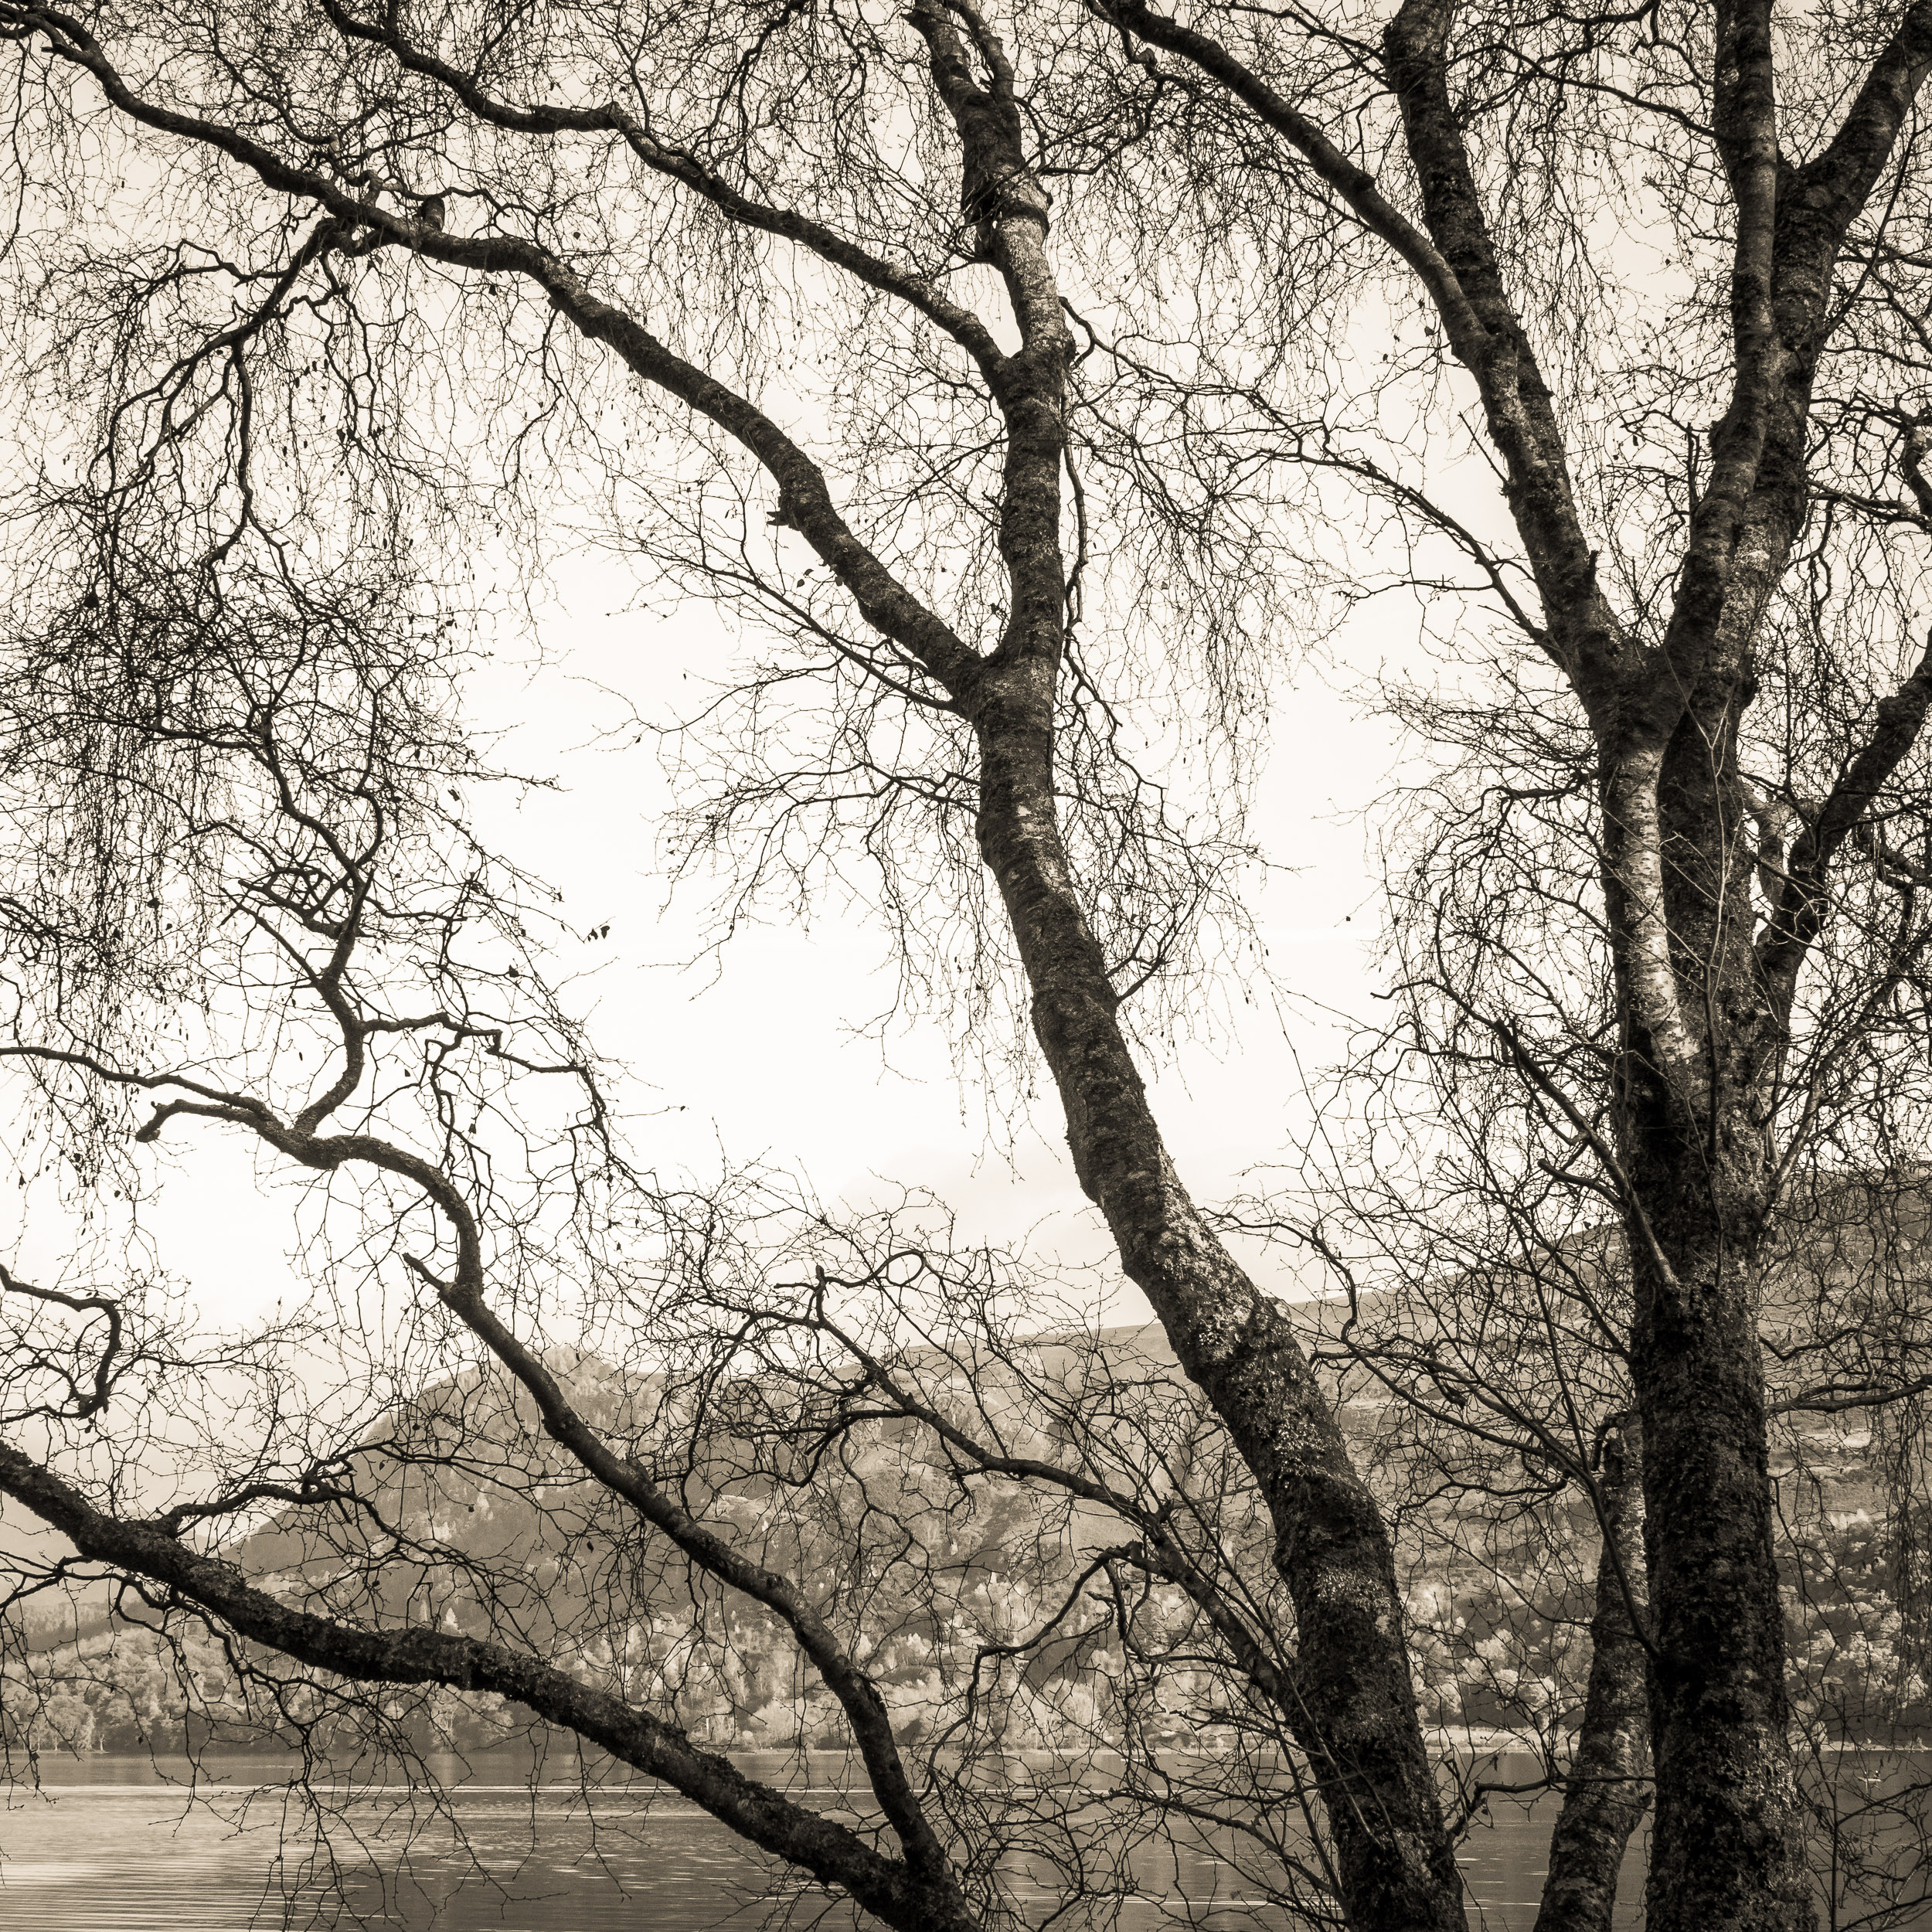 The branches in this photograph are framed to create multiple triangles in my composition.  They force the viewers eye to explore the photograph, as the eye can not sit still on an angled line. The repeating triangles strengthen each other.